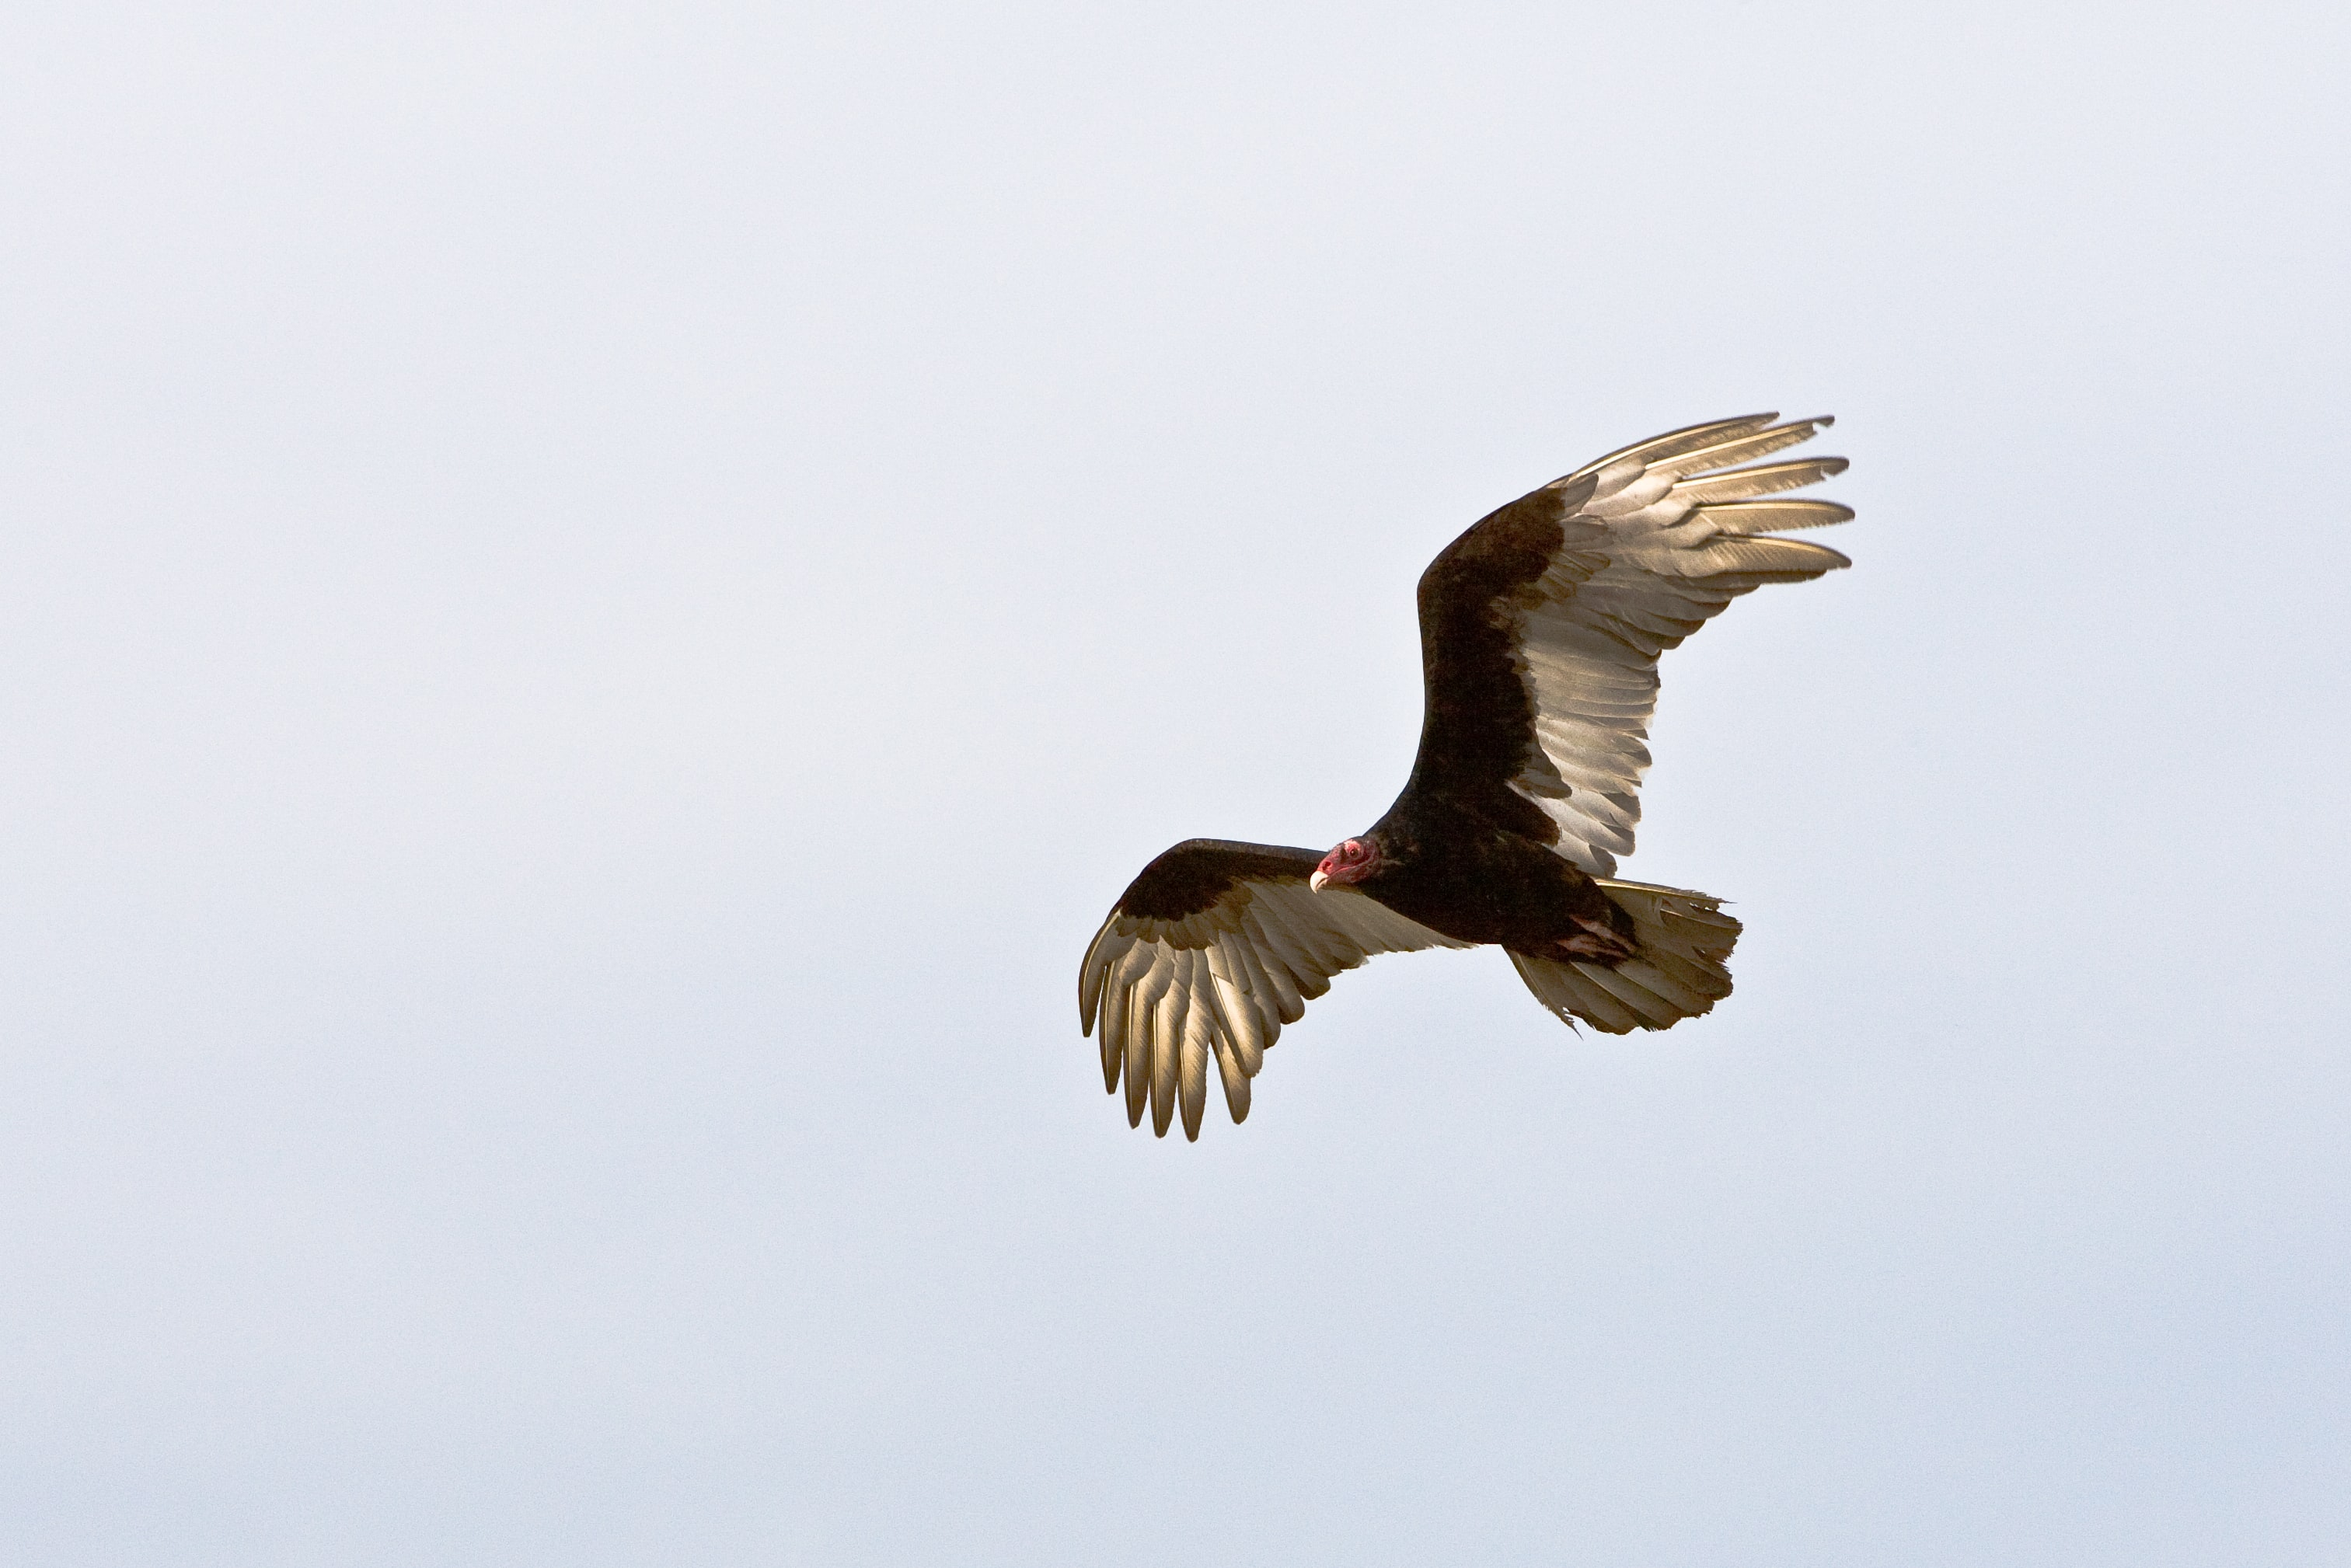 A turkey vulture with its wings outstretched against the pale blue sky